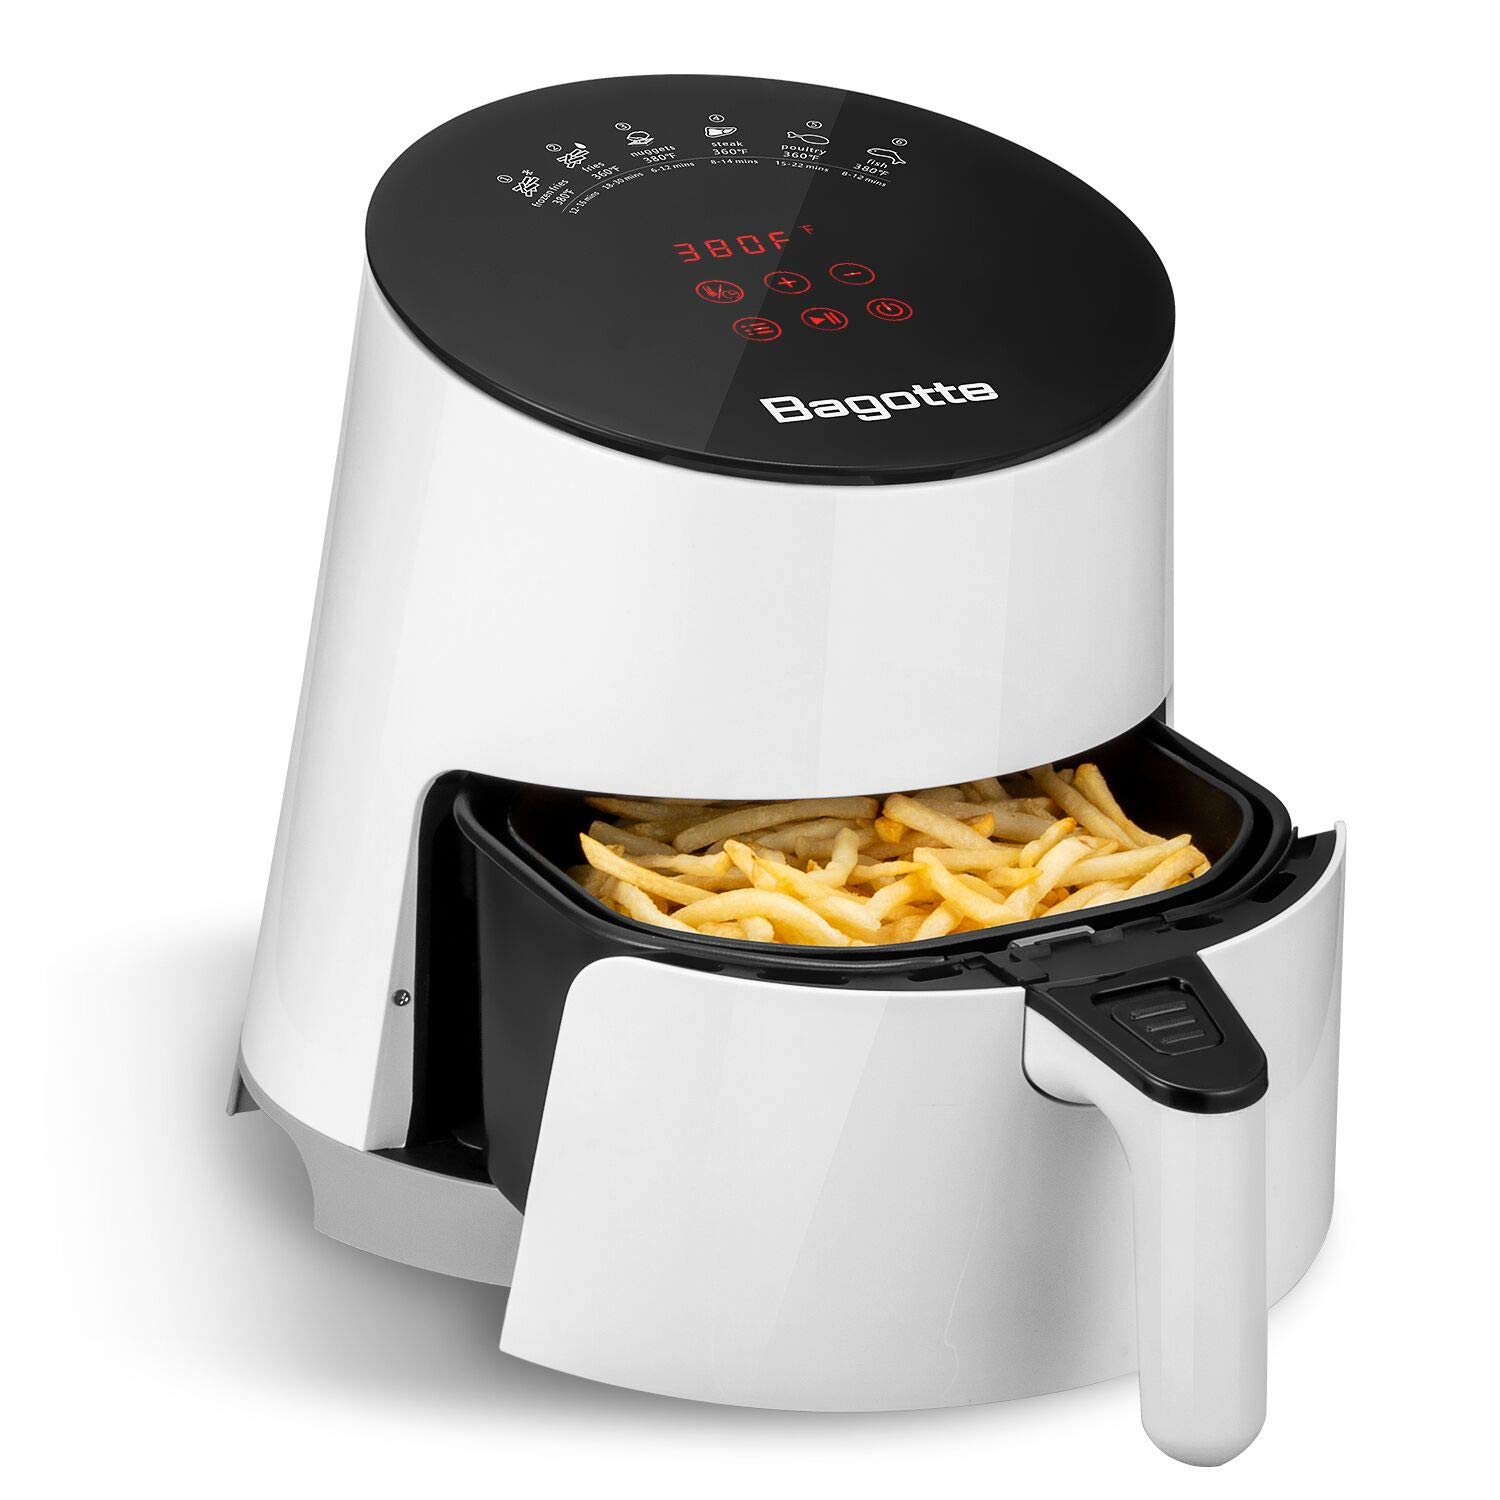 US 5QT Bagotte Air Fryer